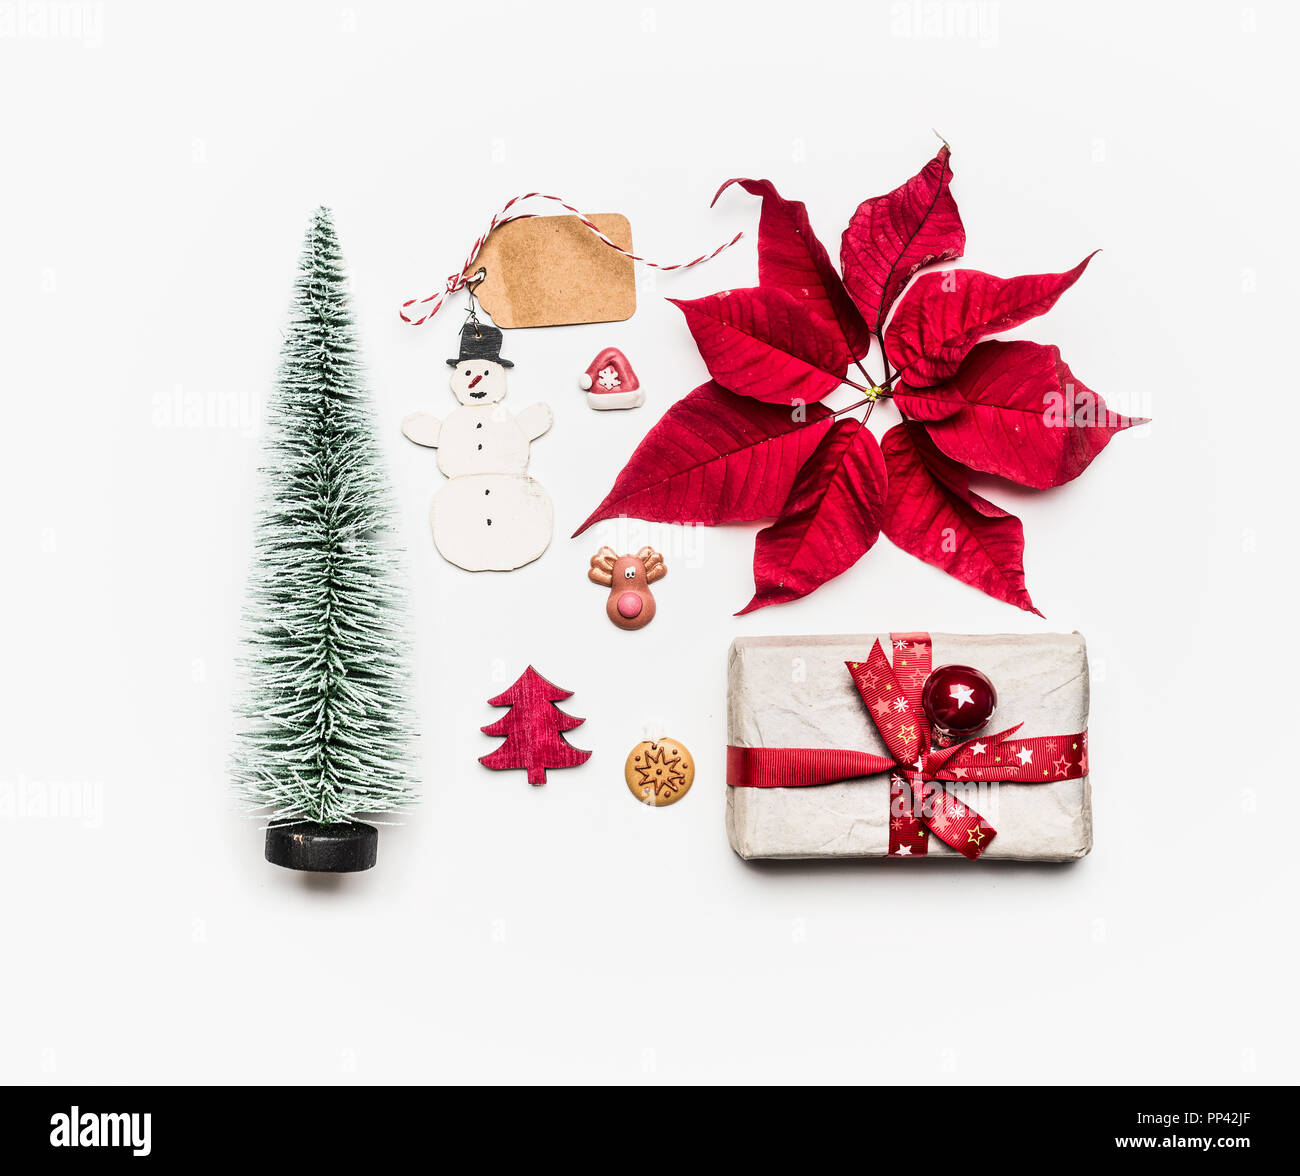 various holiday objects gift christmas tree decorations red poinsettia snowman tags on white background flat lay top view - Poinsettia Christmas Tree Decorations